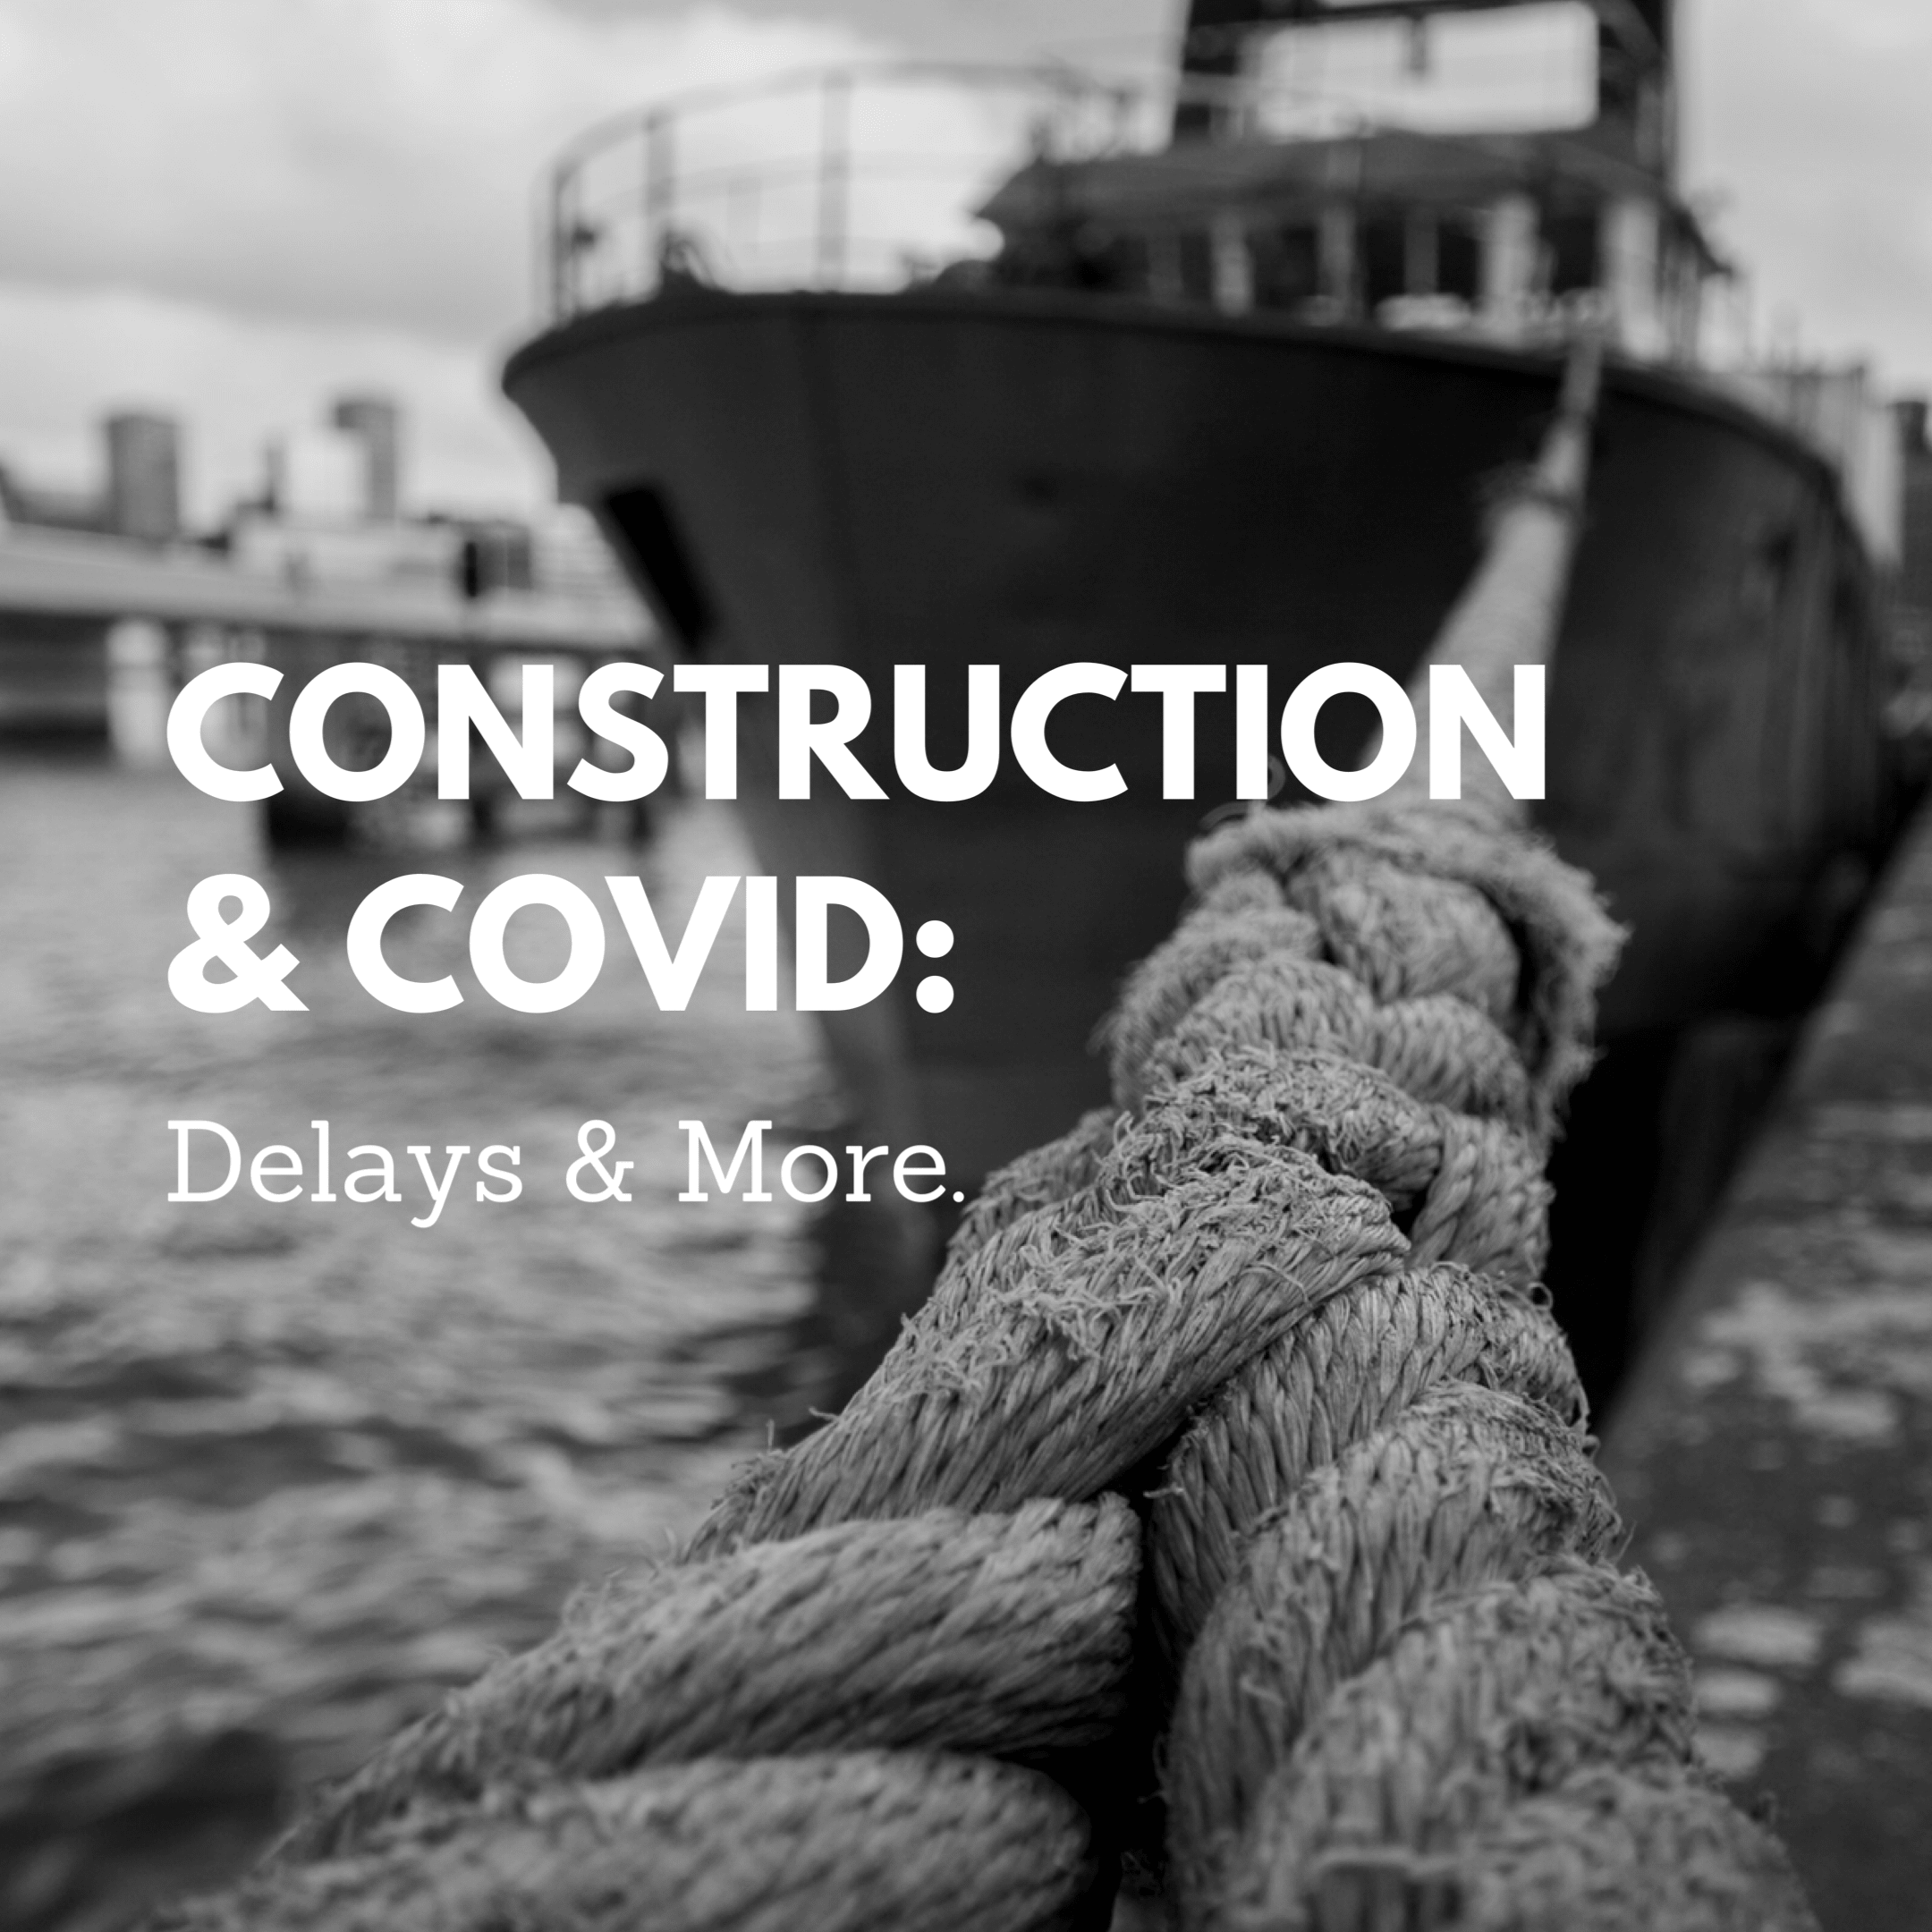 Construction & COVID: Delays & More.